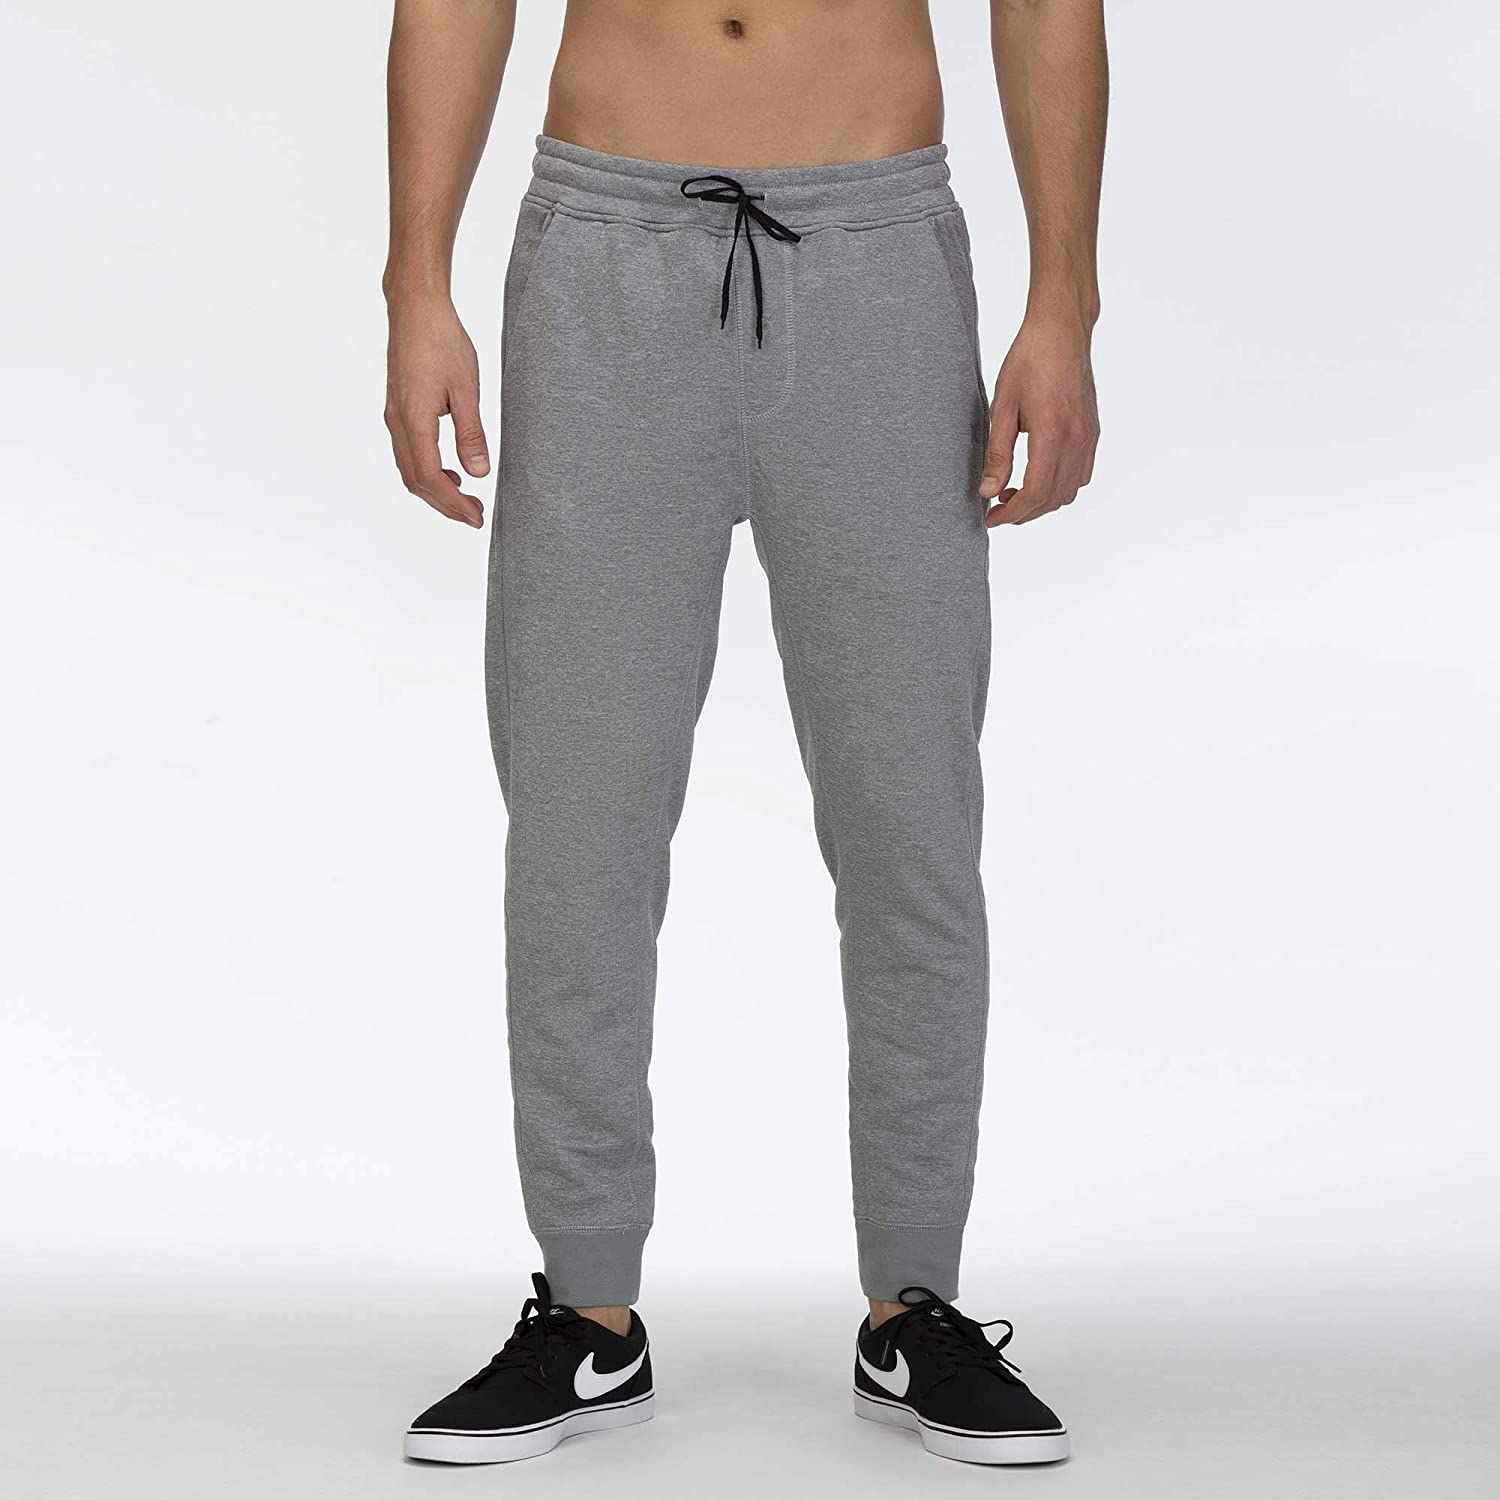 Hurley Men's Nike Dri Fit Disperse Jogger Pant: Clothing